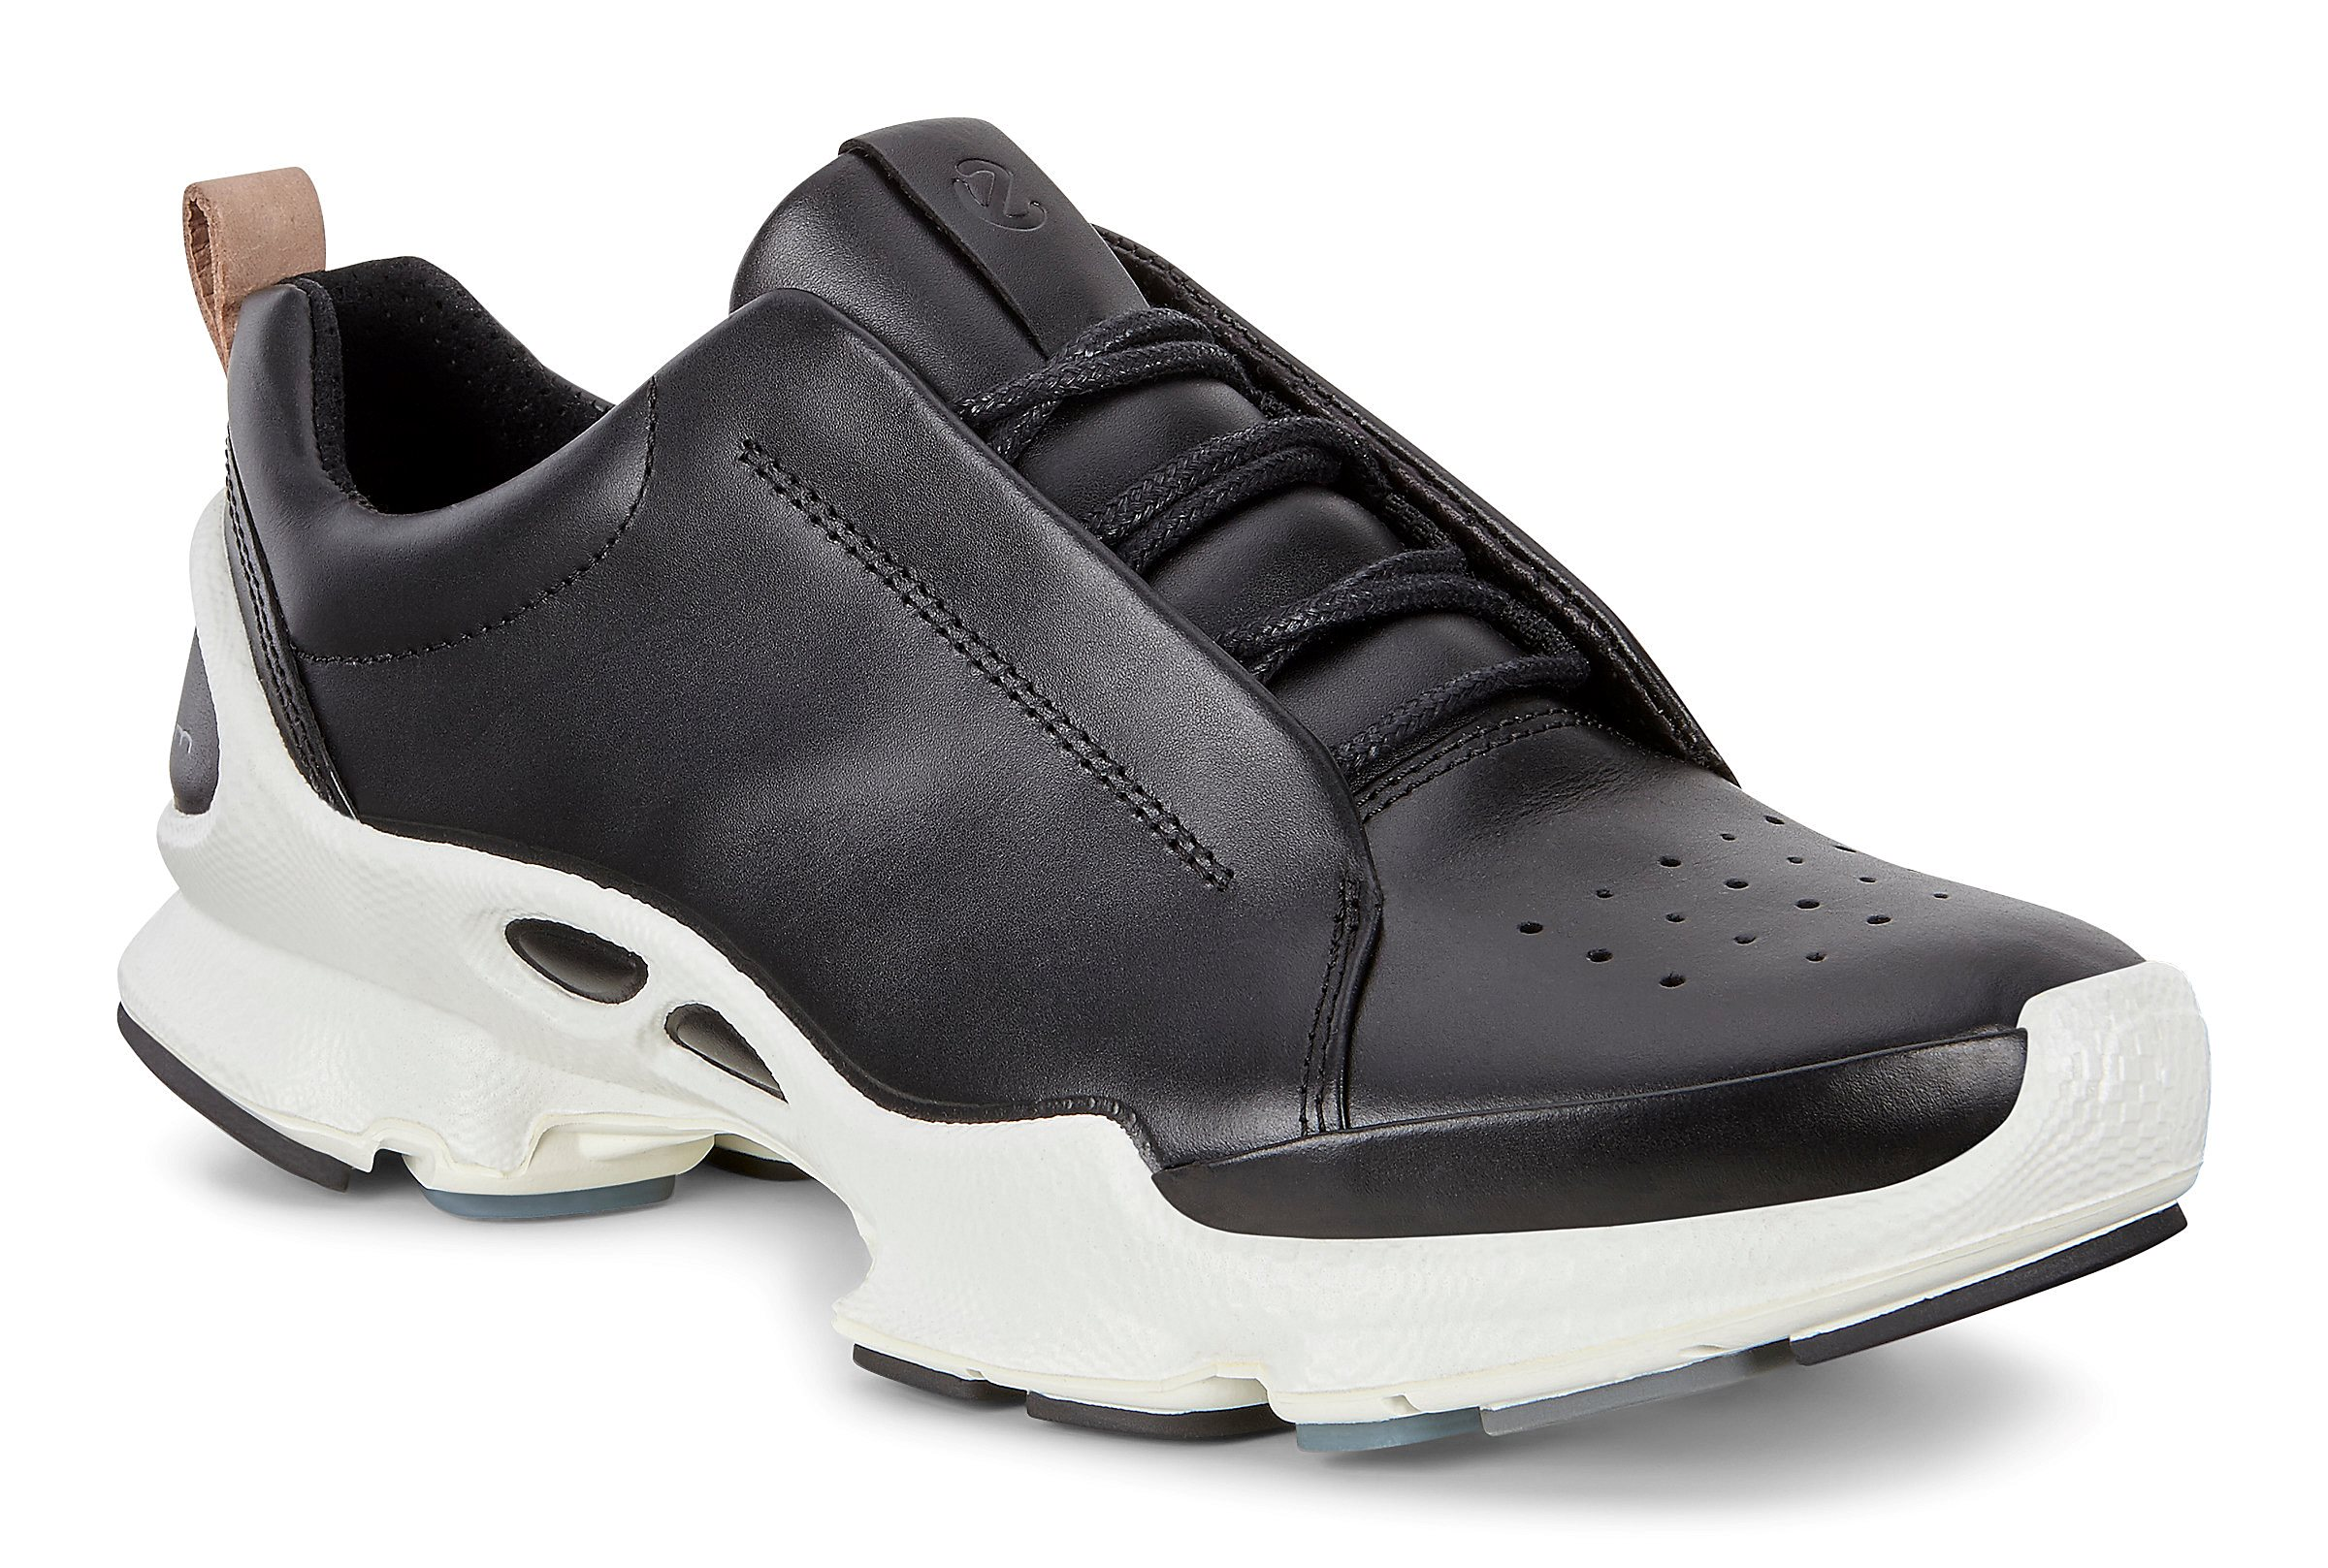 official store special for shoe on feet shots of ECCO BIOM C